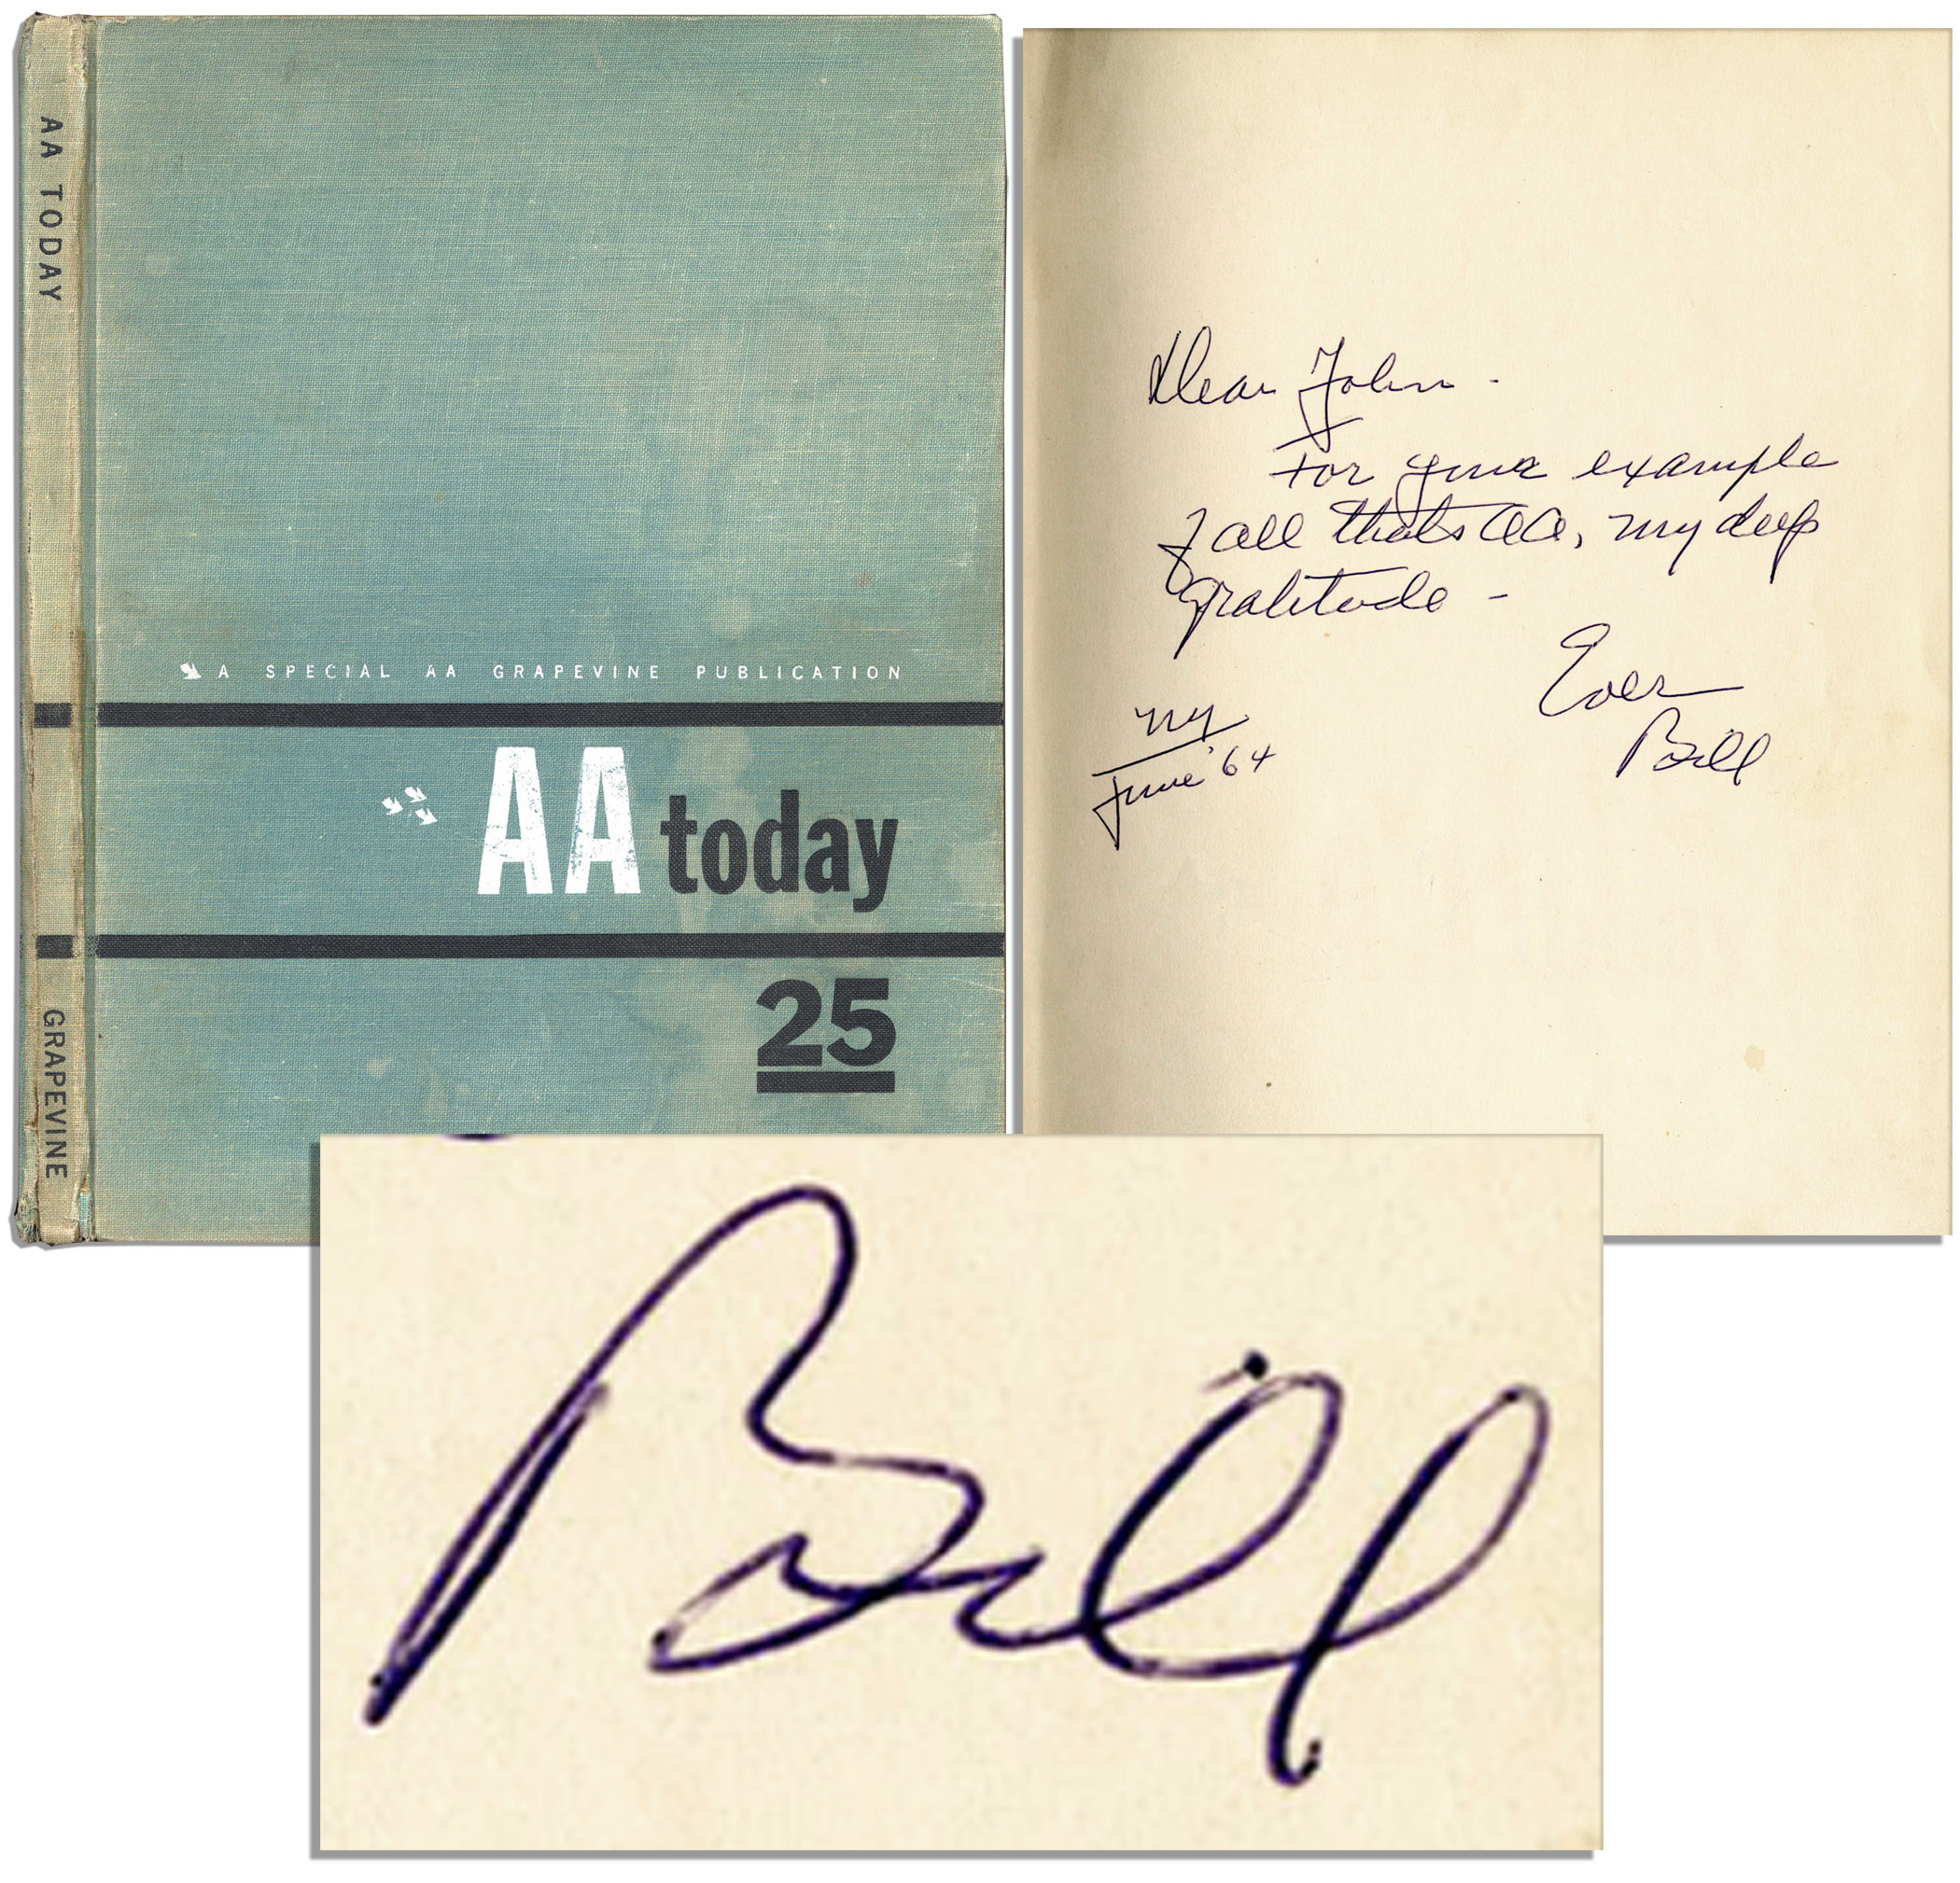 Alcoholics Anonymous First Edition Bill Wilson Signed Copy of ''AA Today'' -- Very Rare Alcoholics Anonymous Book